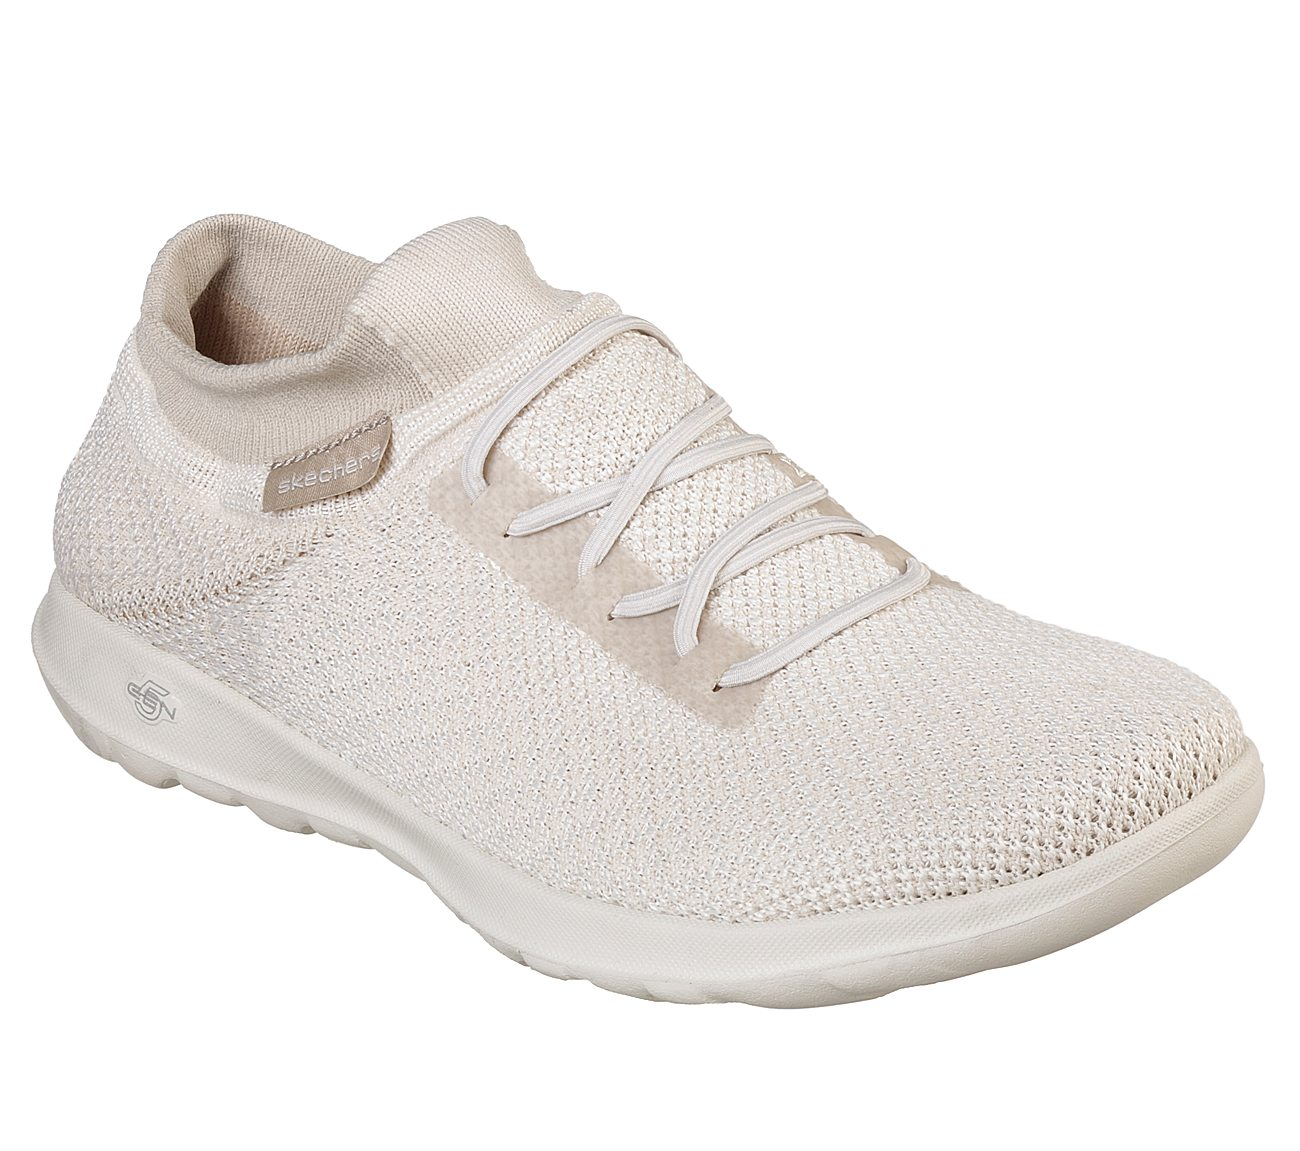 Skechers GOwalk Lite - Splendid